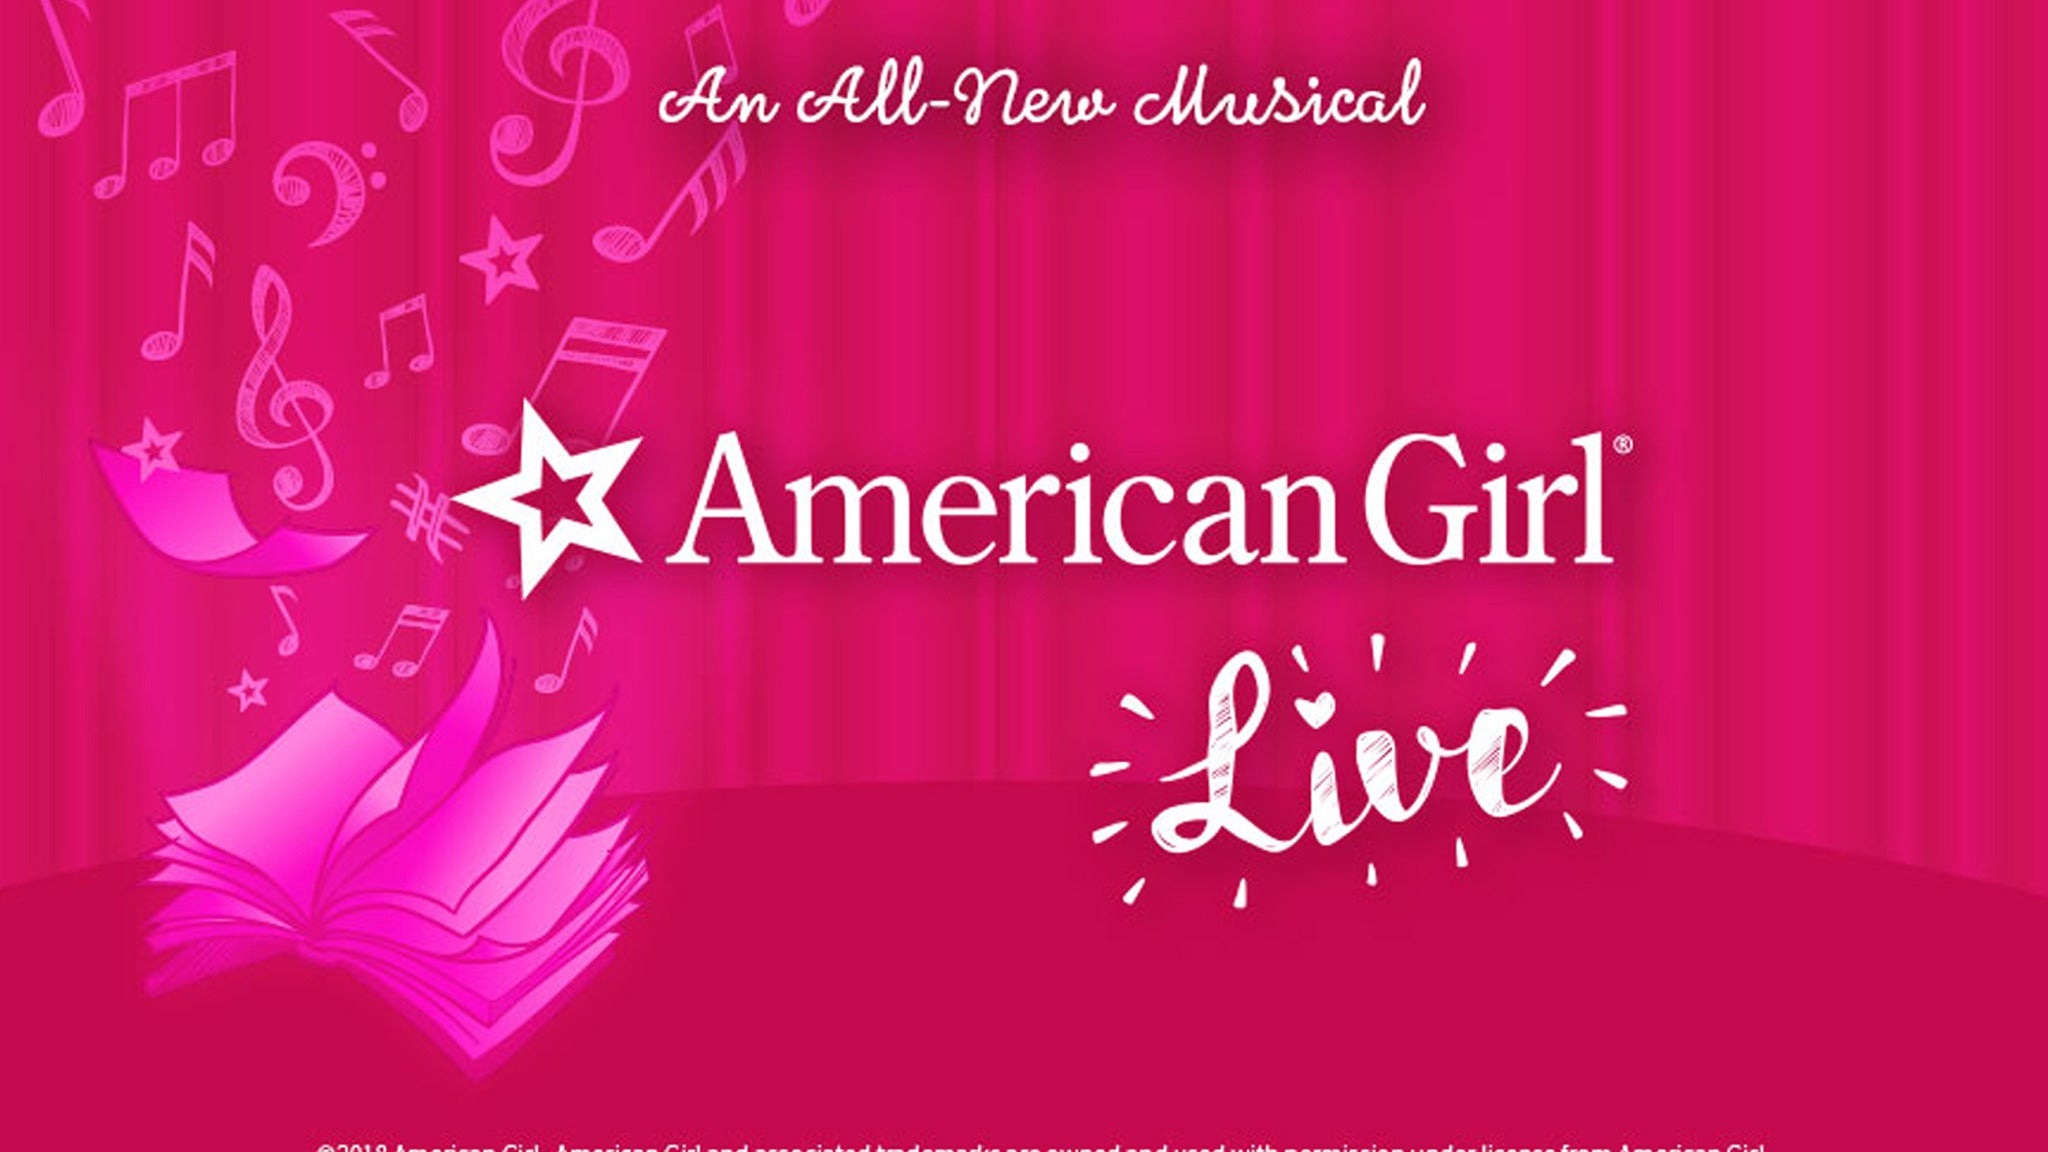 American Girl Live (Chicago) - Chicago, IL 60611